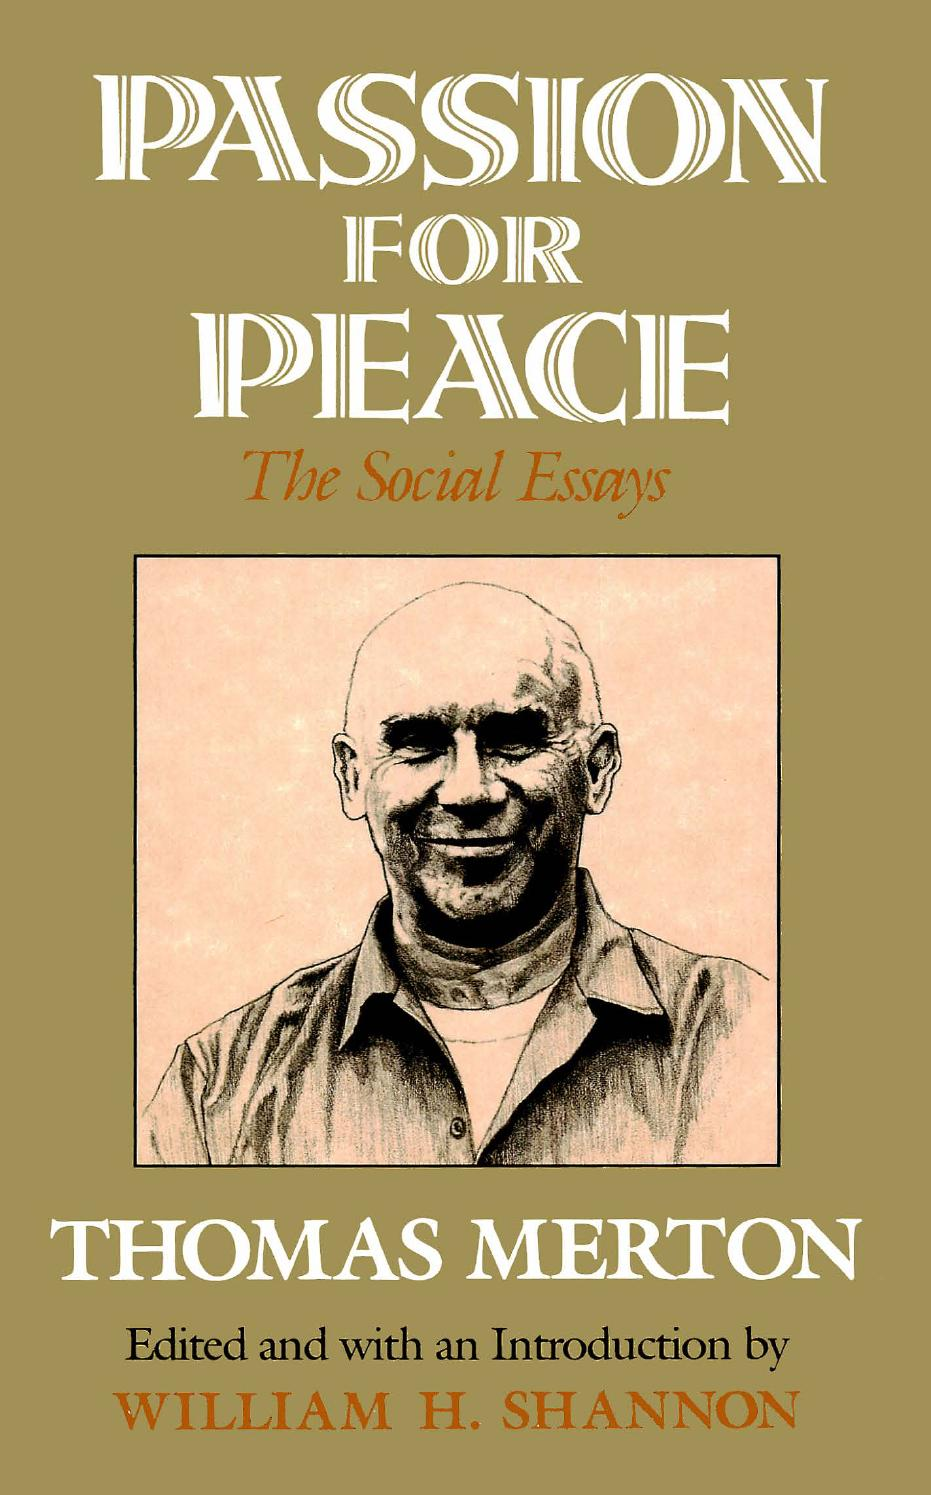 passion for peace the social essays by thomas merton ed william passion for peace the social essays by thomas merton ed william h shannon by samzdat issuu